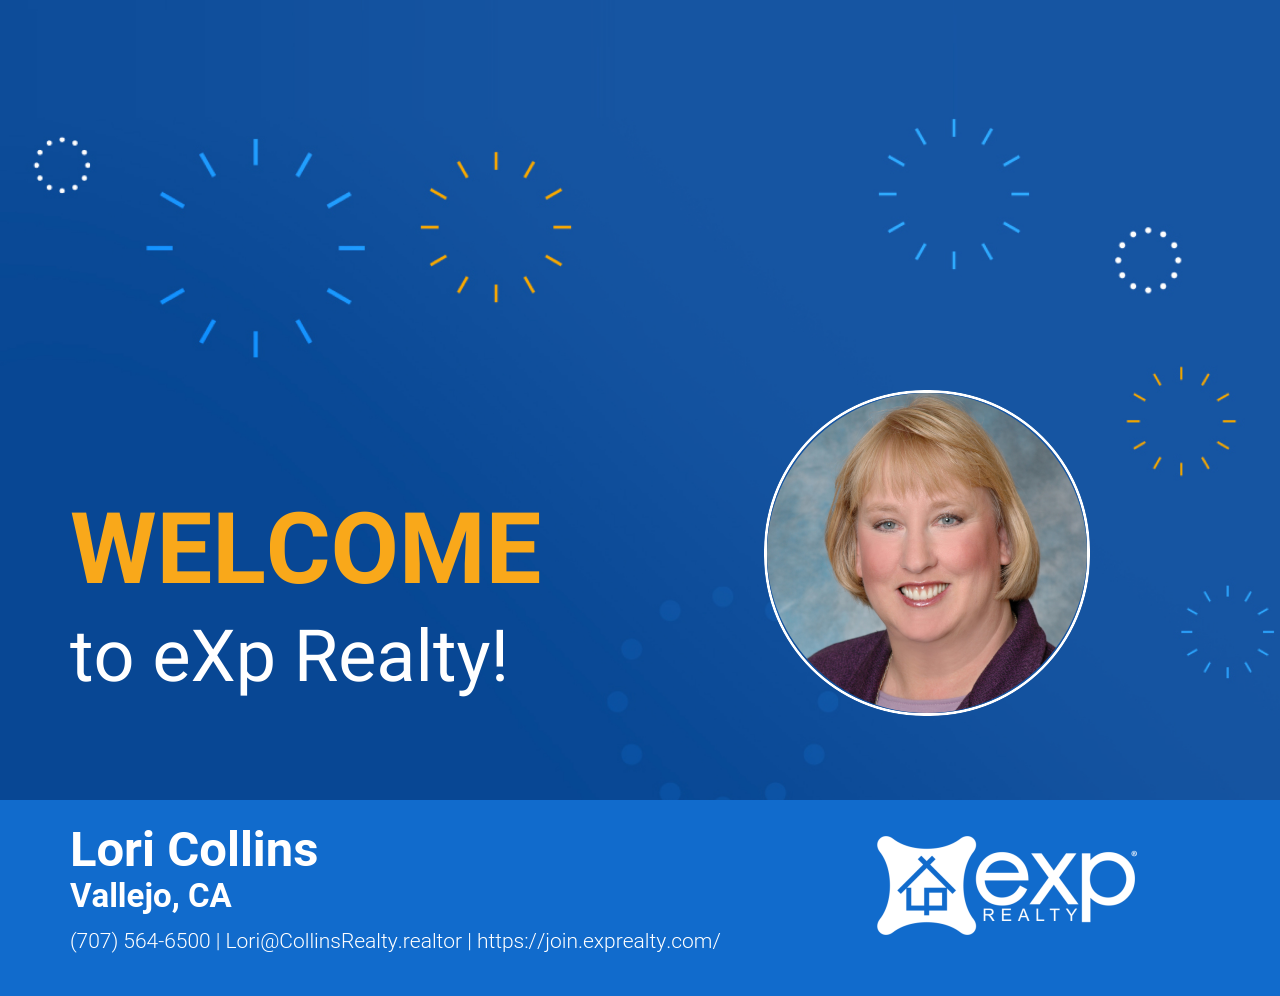 eXp Realty Welcomes Lori Collins!